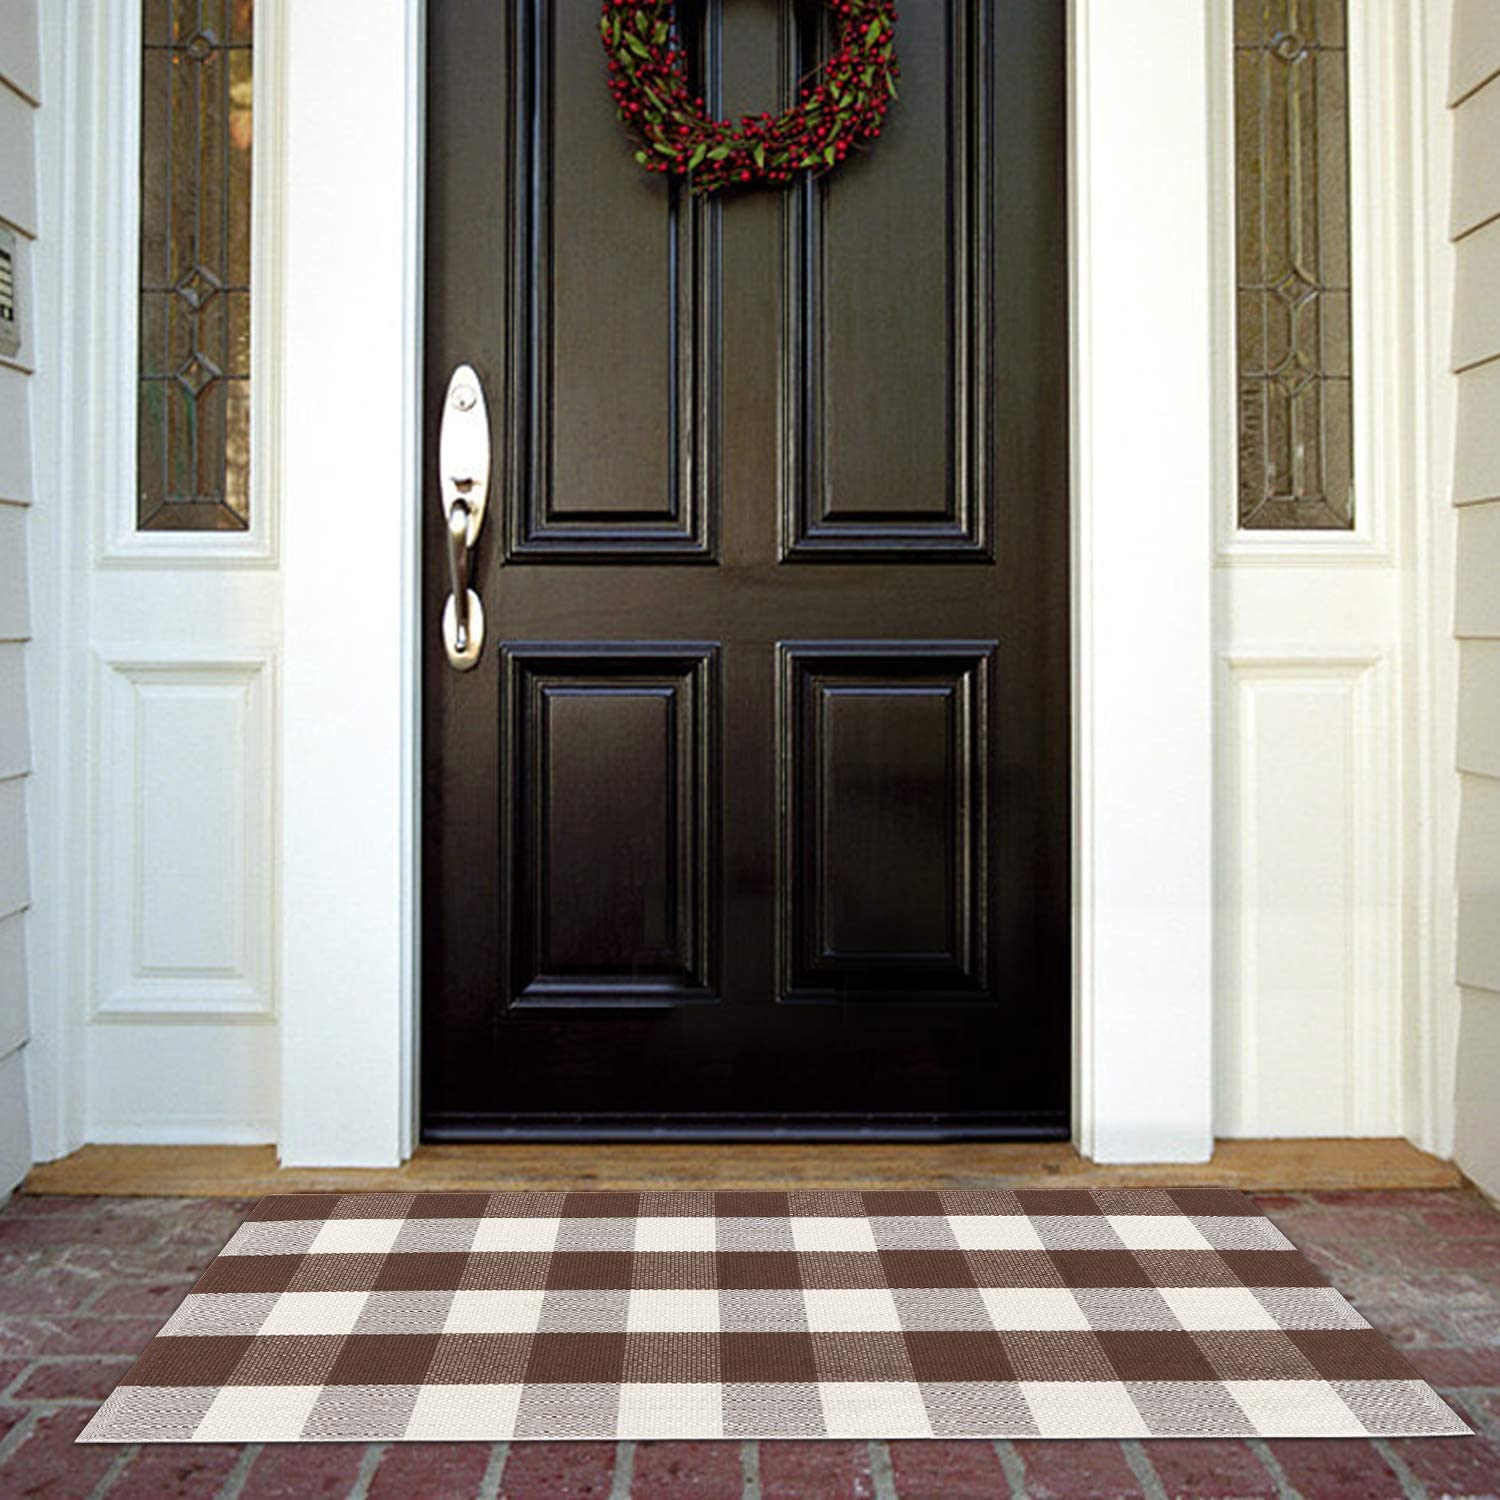 Cotton Buffalo Plaid Checke Rug 24'' x 51'', KIMODE Farmhouse Brown/White Woven Layered Welcome Door Mat, Washable Porch Floor Runner Rug for Frontdoor Kitchen Entryway Outdoor Decoration